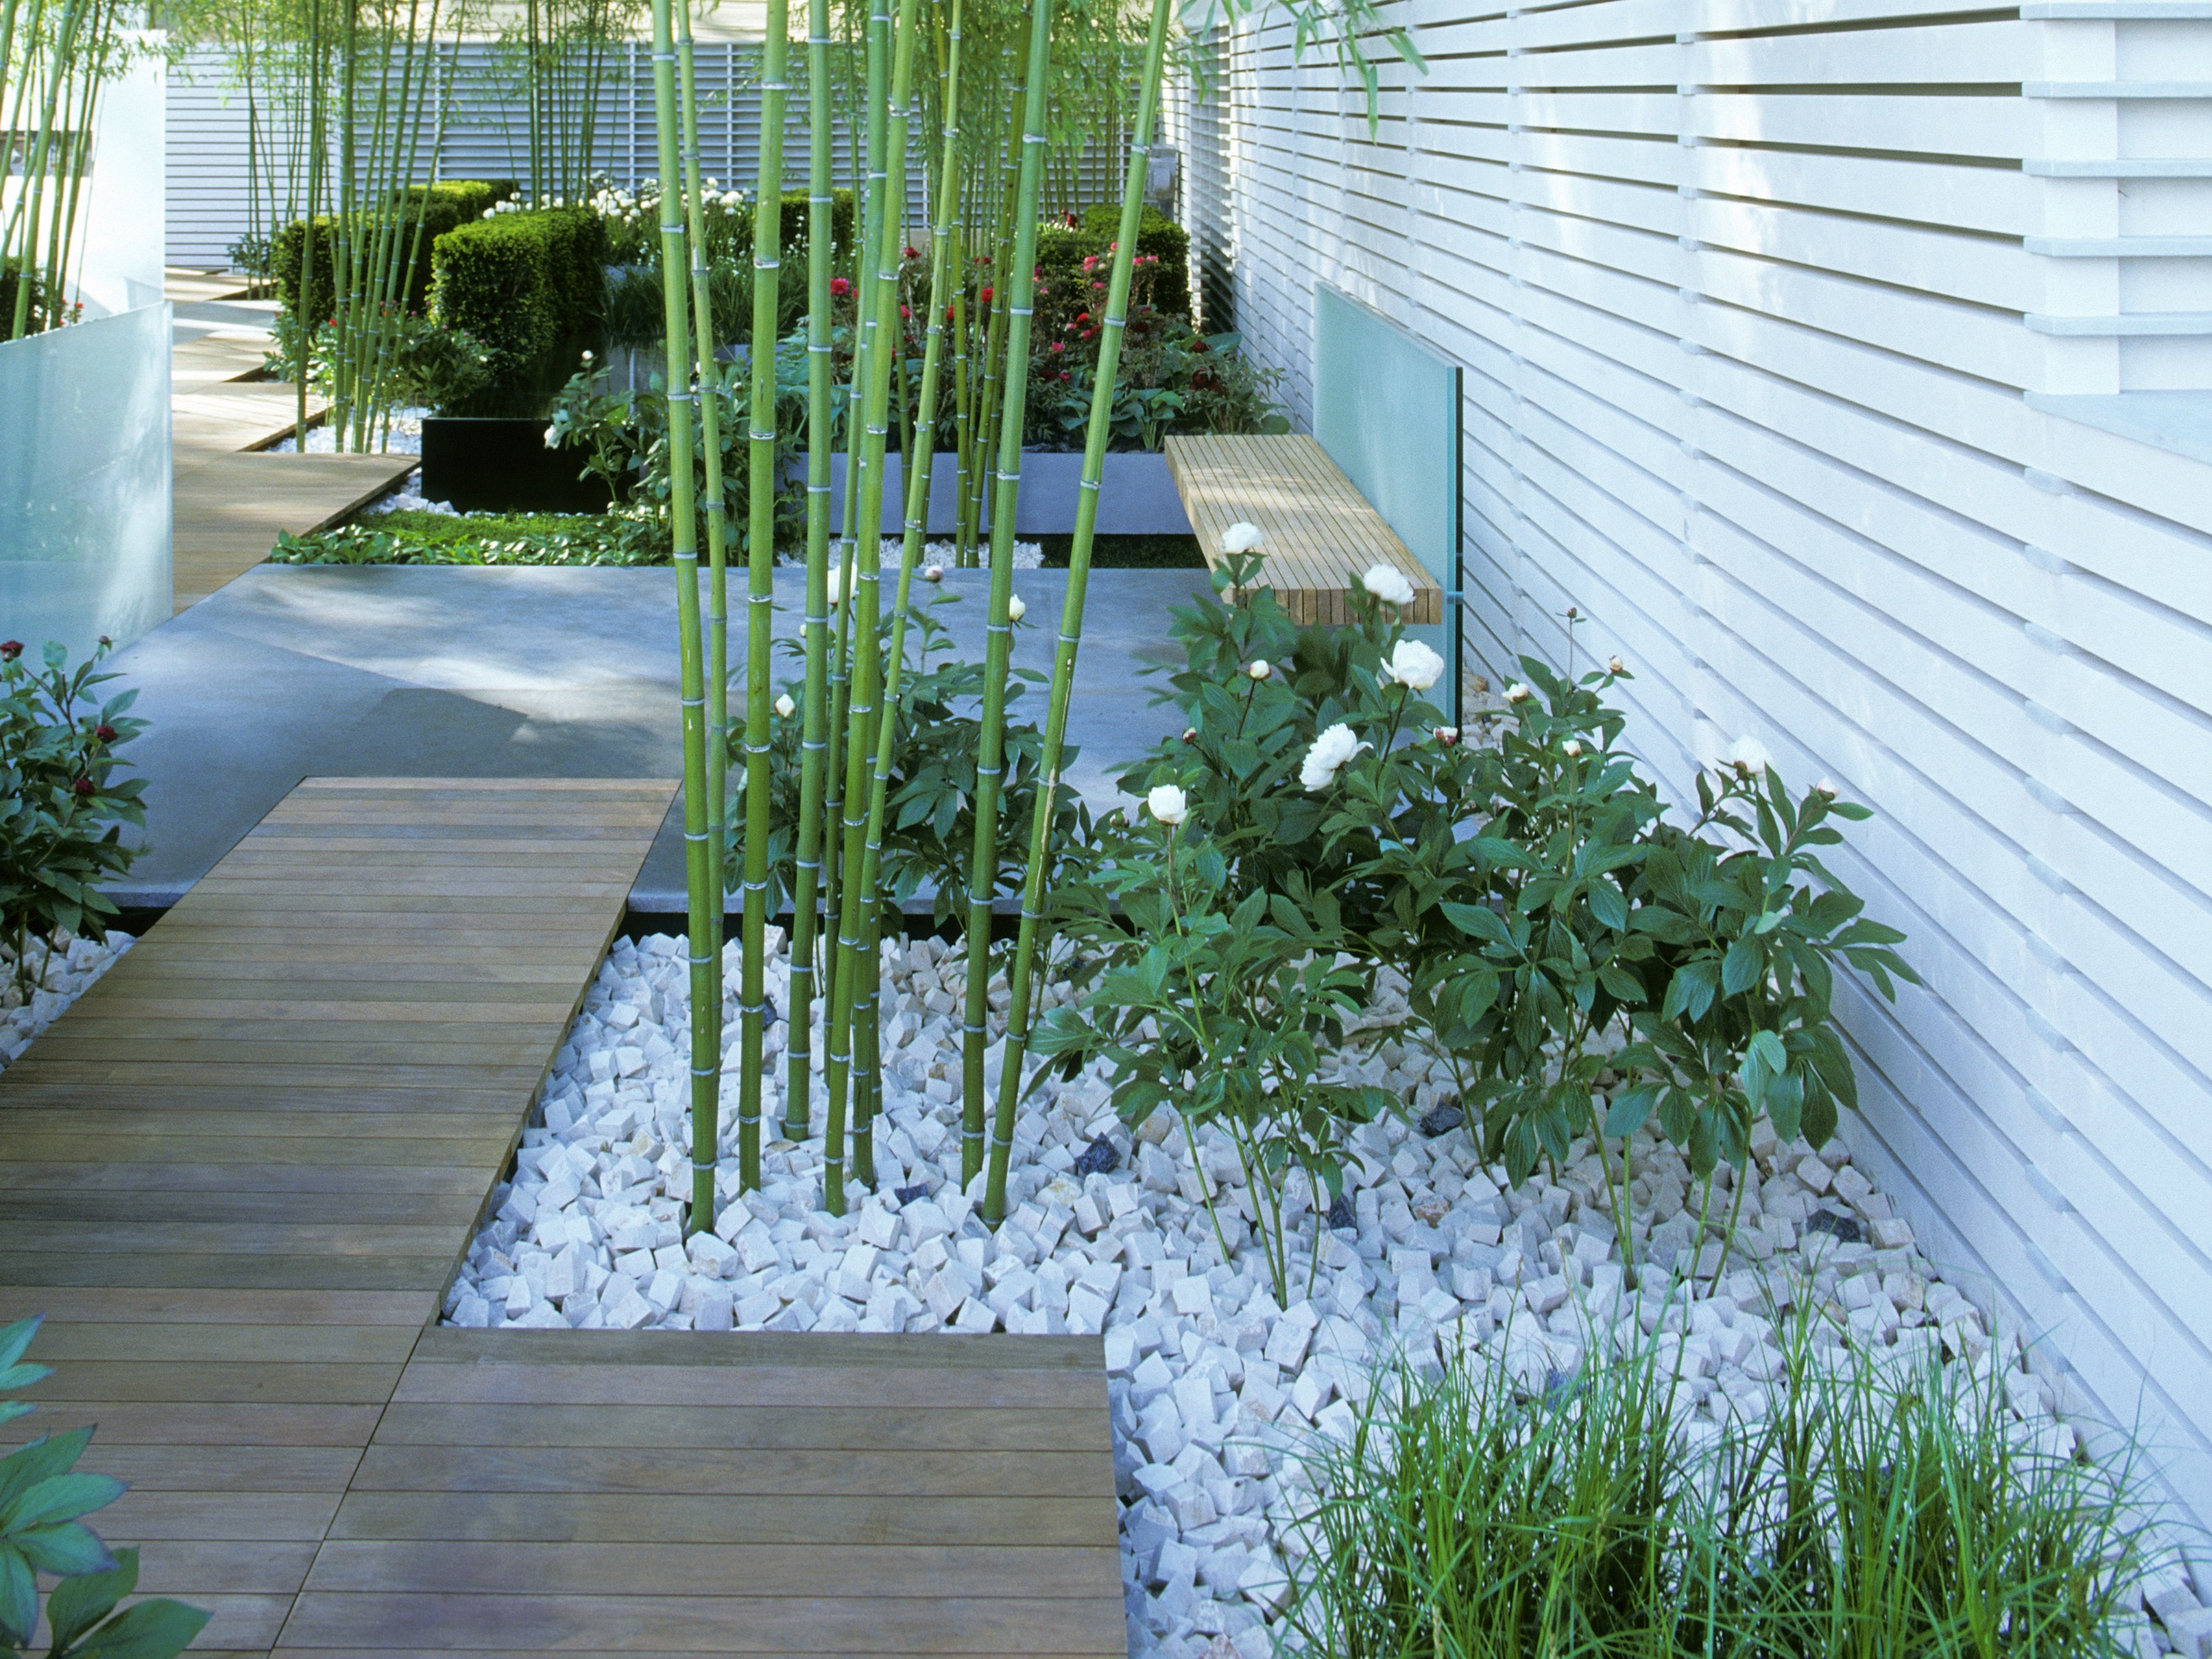 garden 10 modern japanese garden design ideas 4 of 10 photos